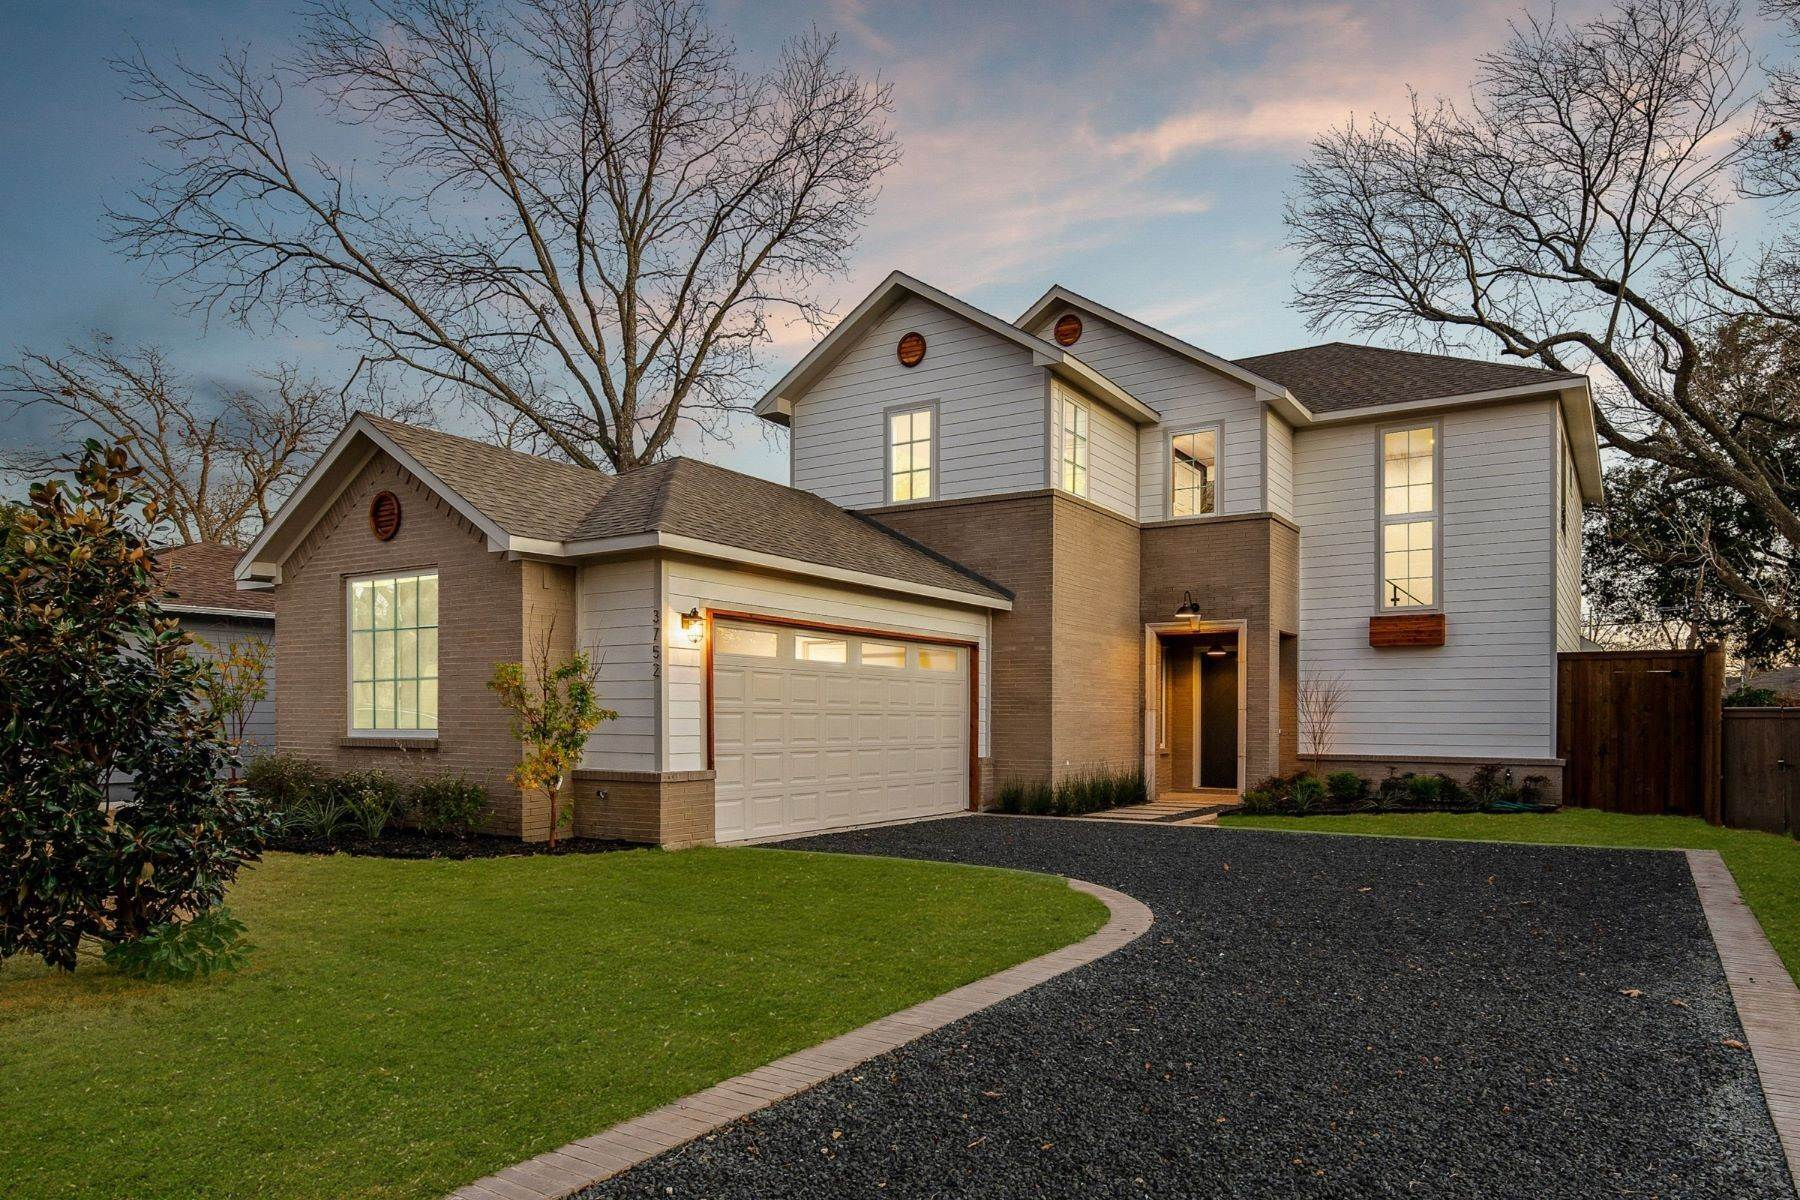 Single Family Homes for Sale at Midway Hollow Modern Transitional 3752 Park Lane Dallas, Texas 75220 United States